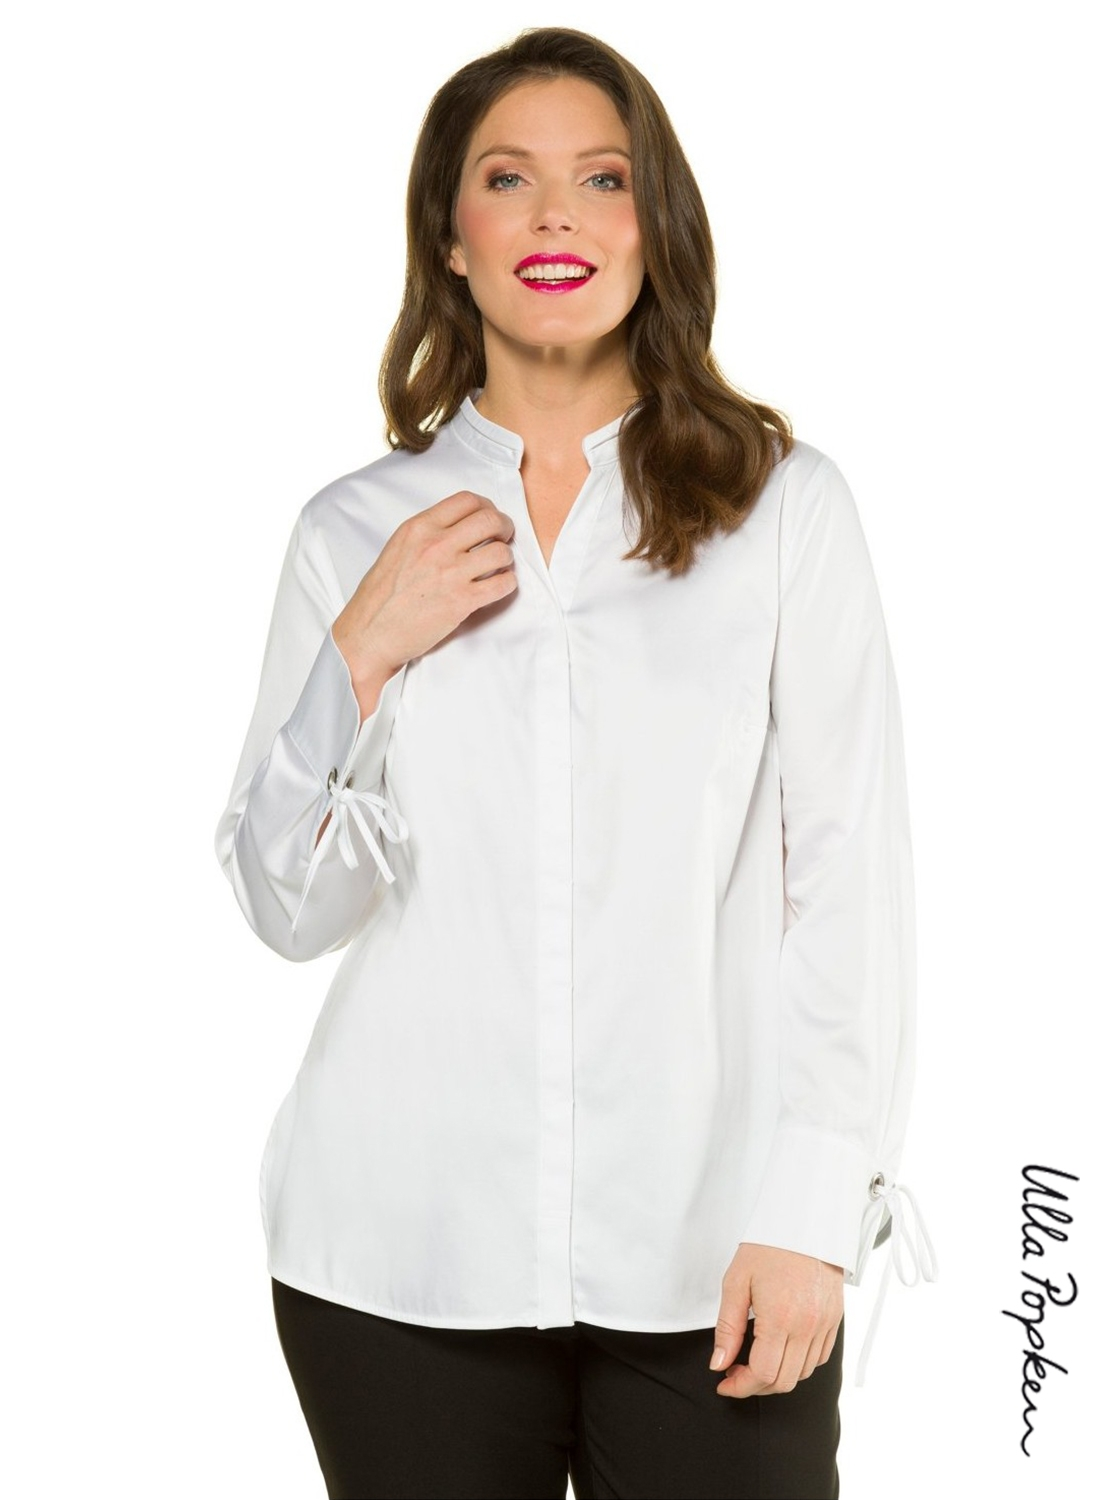 Chemise Ulla Popken blanche, lacets manches